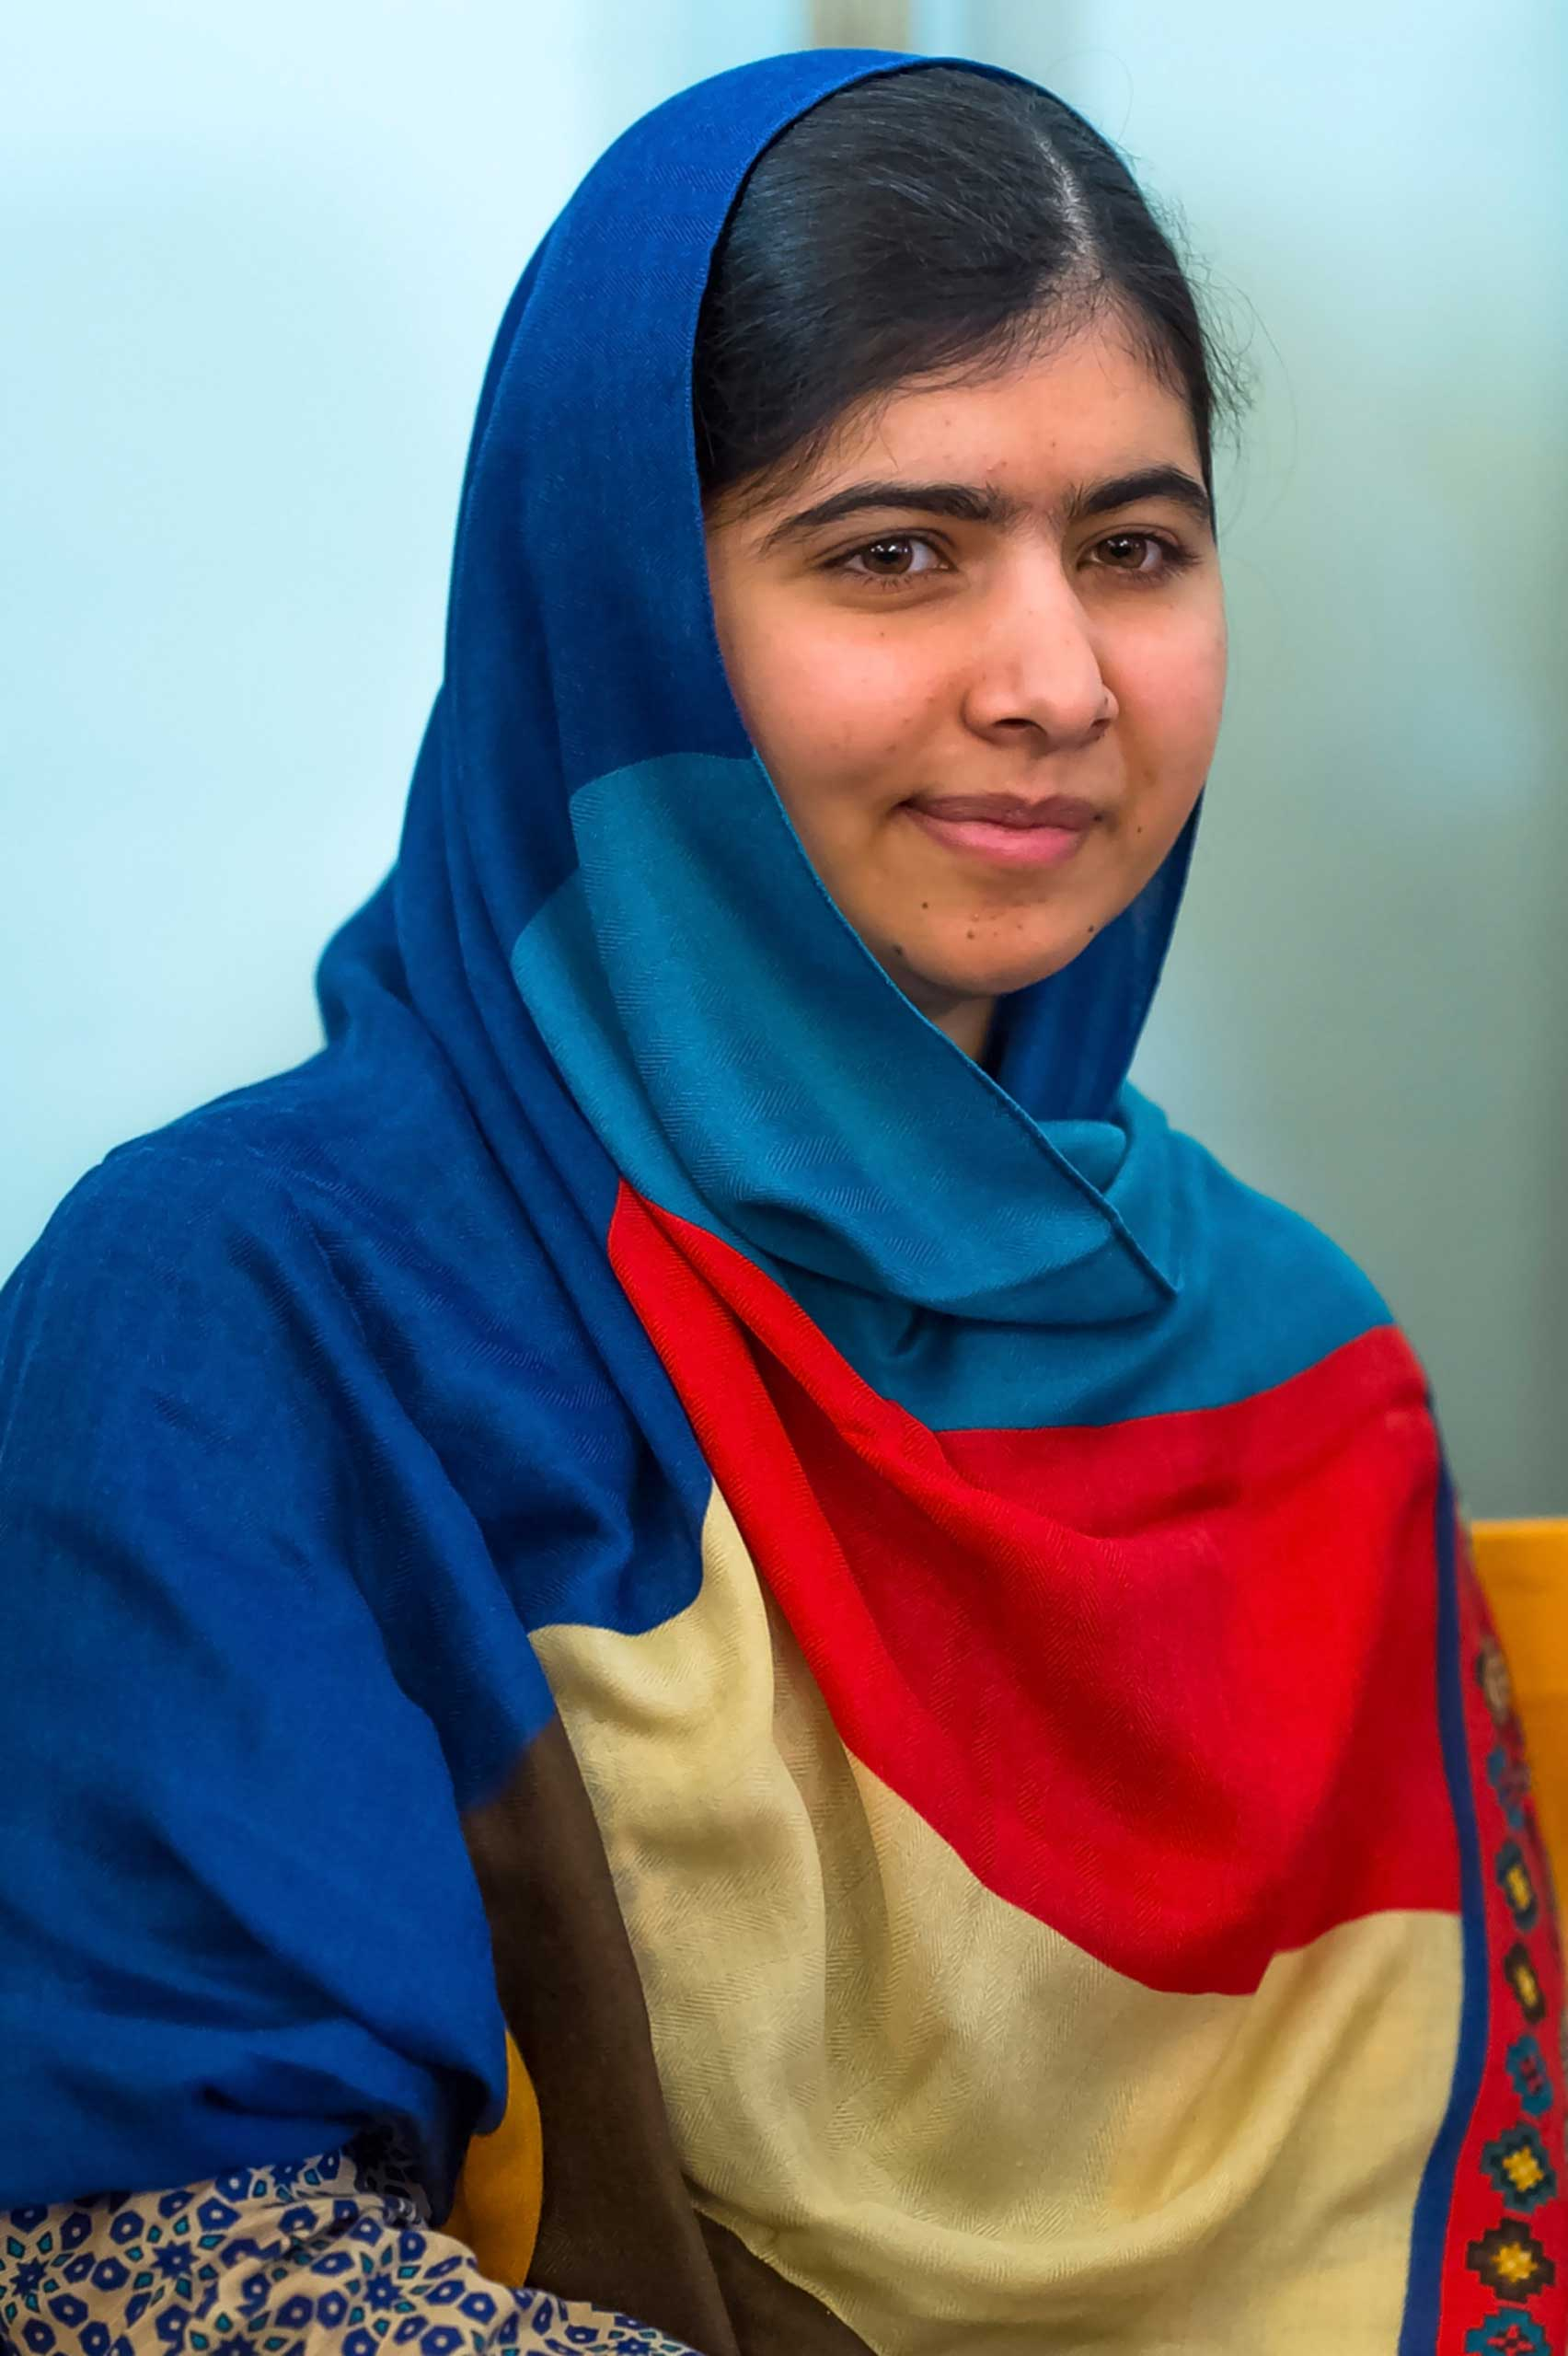 OSLO, NORWAY - DECEMBER 09: Malala Yousafzai attends the Nobel Peace Prize press conference at the Norwegian Nobel Institute  on December 9, 2014 in Oslo, Norway. (Photo by Nigel Waldron/Getty Images)